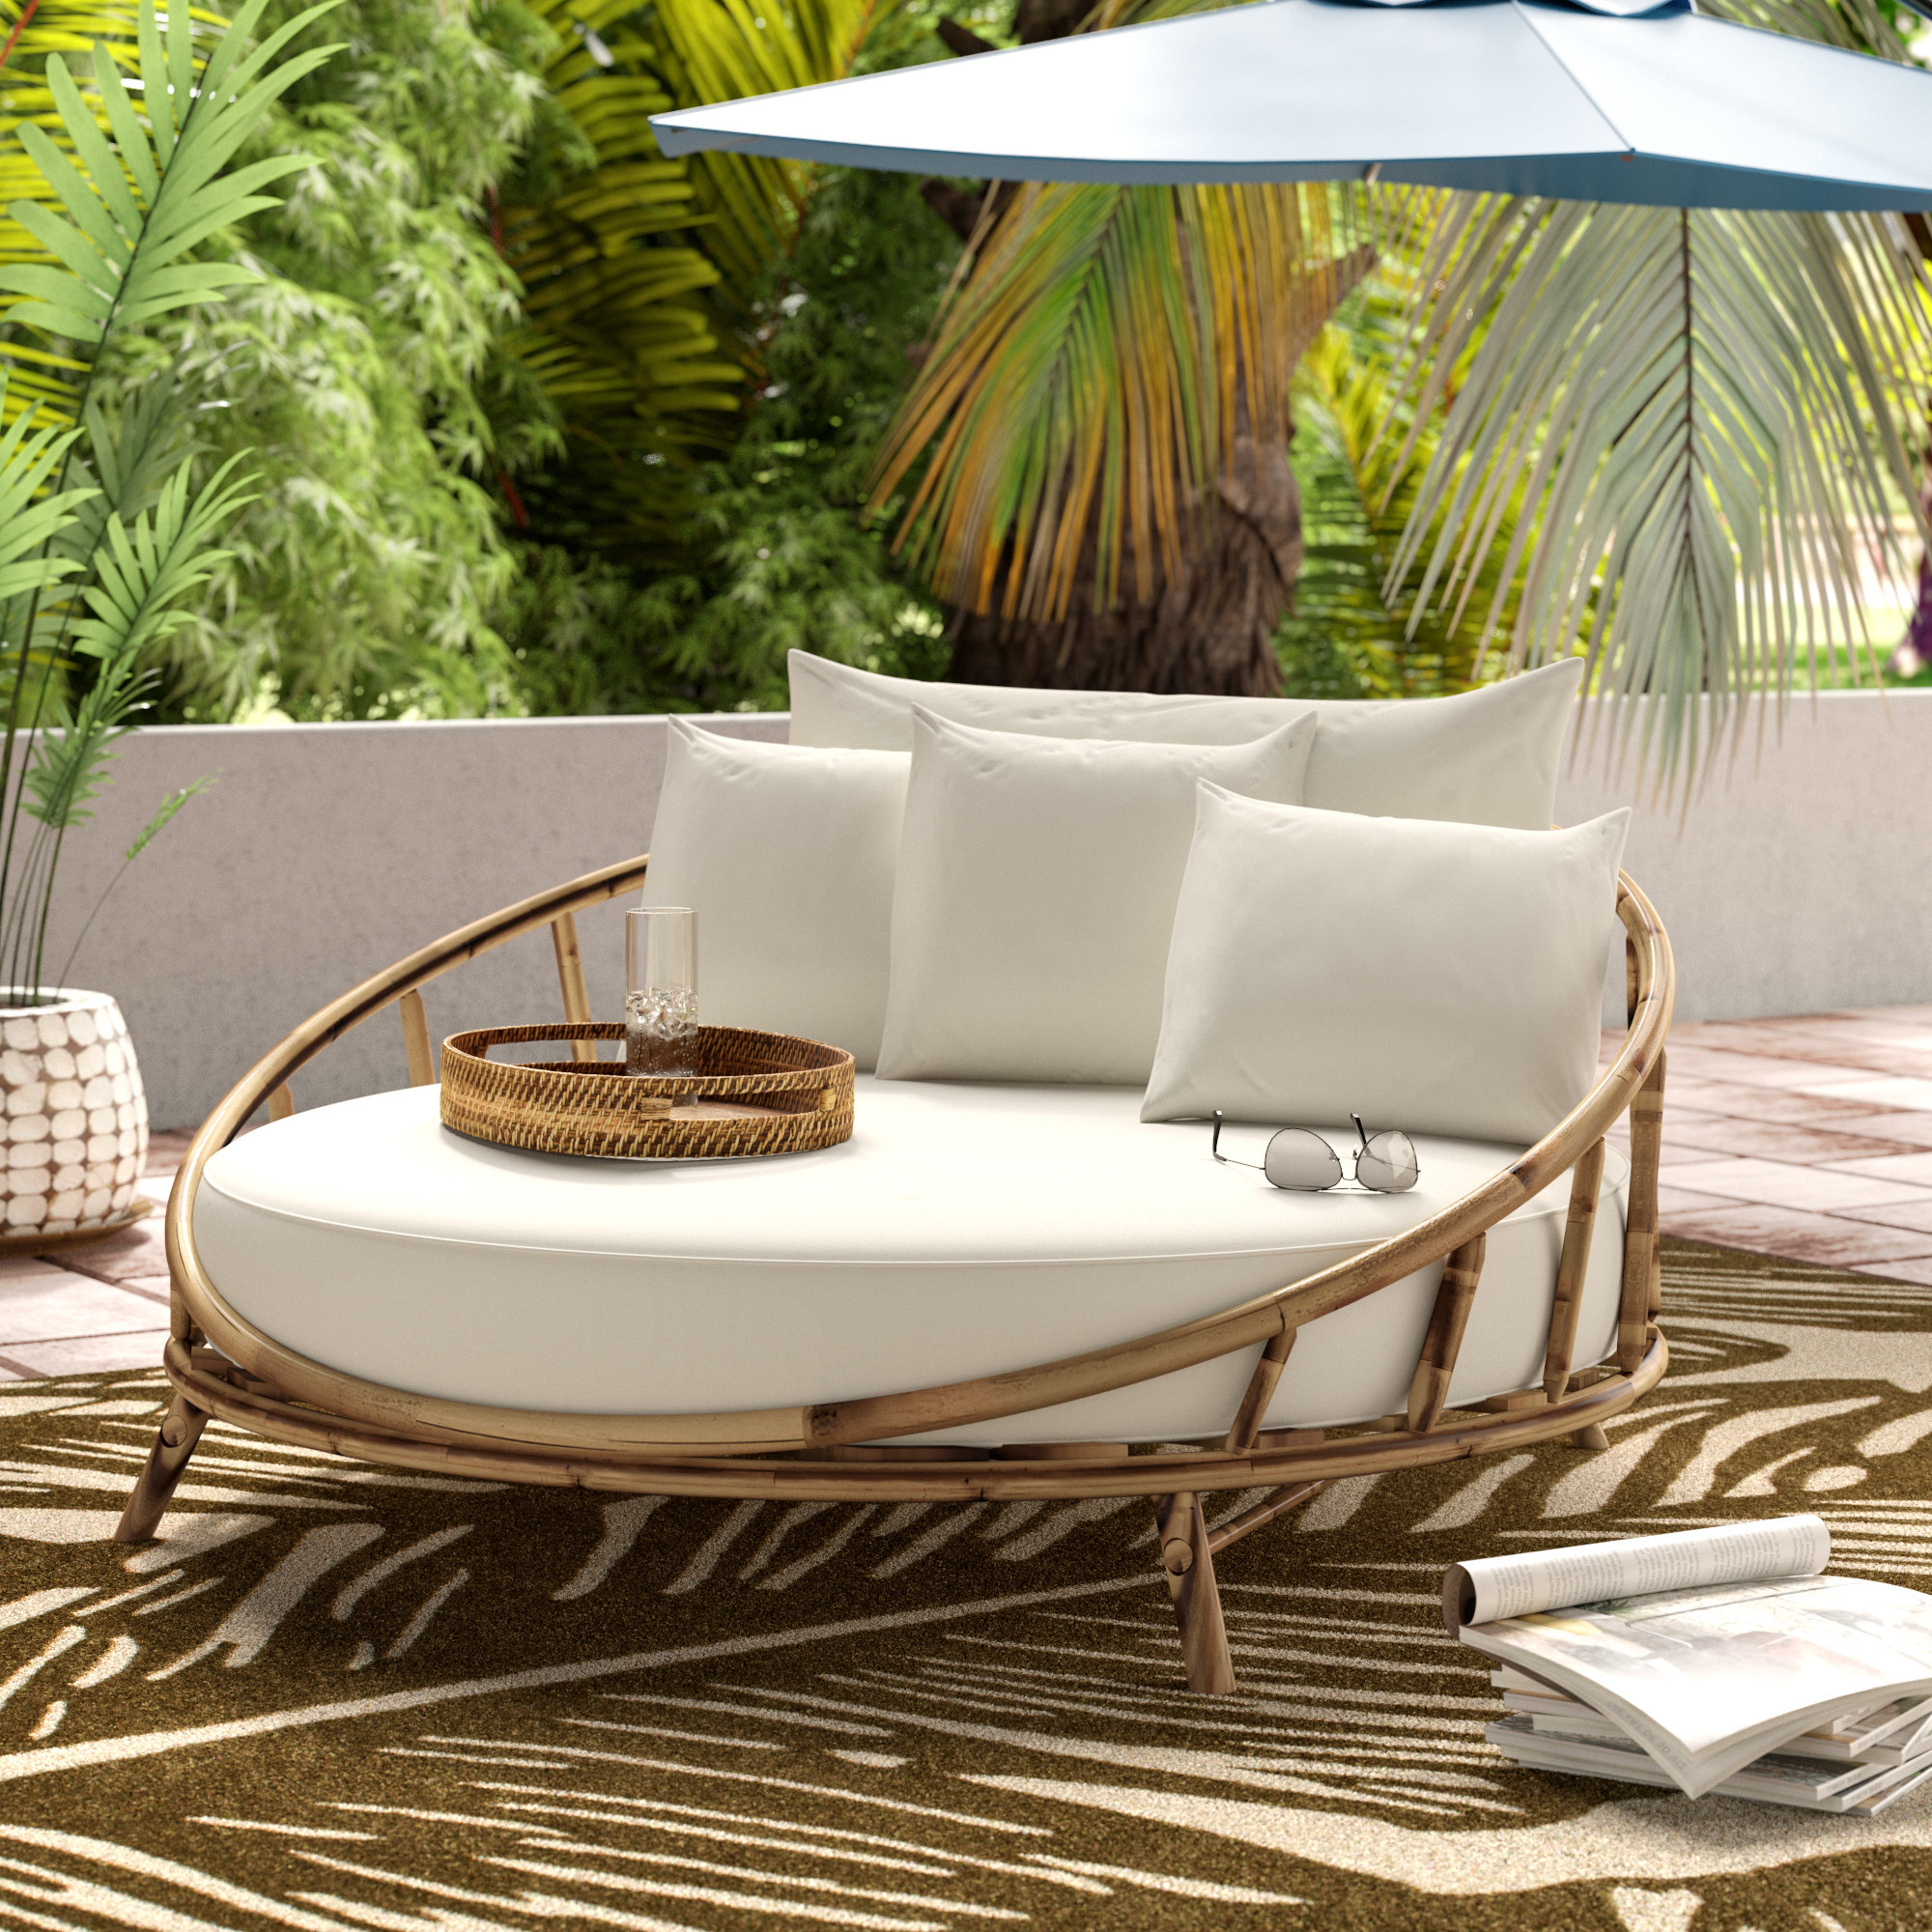 Widely Used Grosvenor Bamboo Patio Daybeds With Cushions Within Bayou Breeze Olu Bamboo Large Round Patio Daybed With Cushions (View 4 of 20)